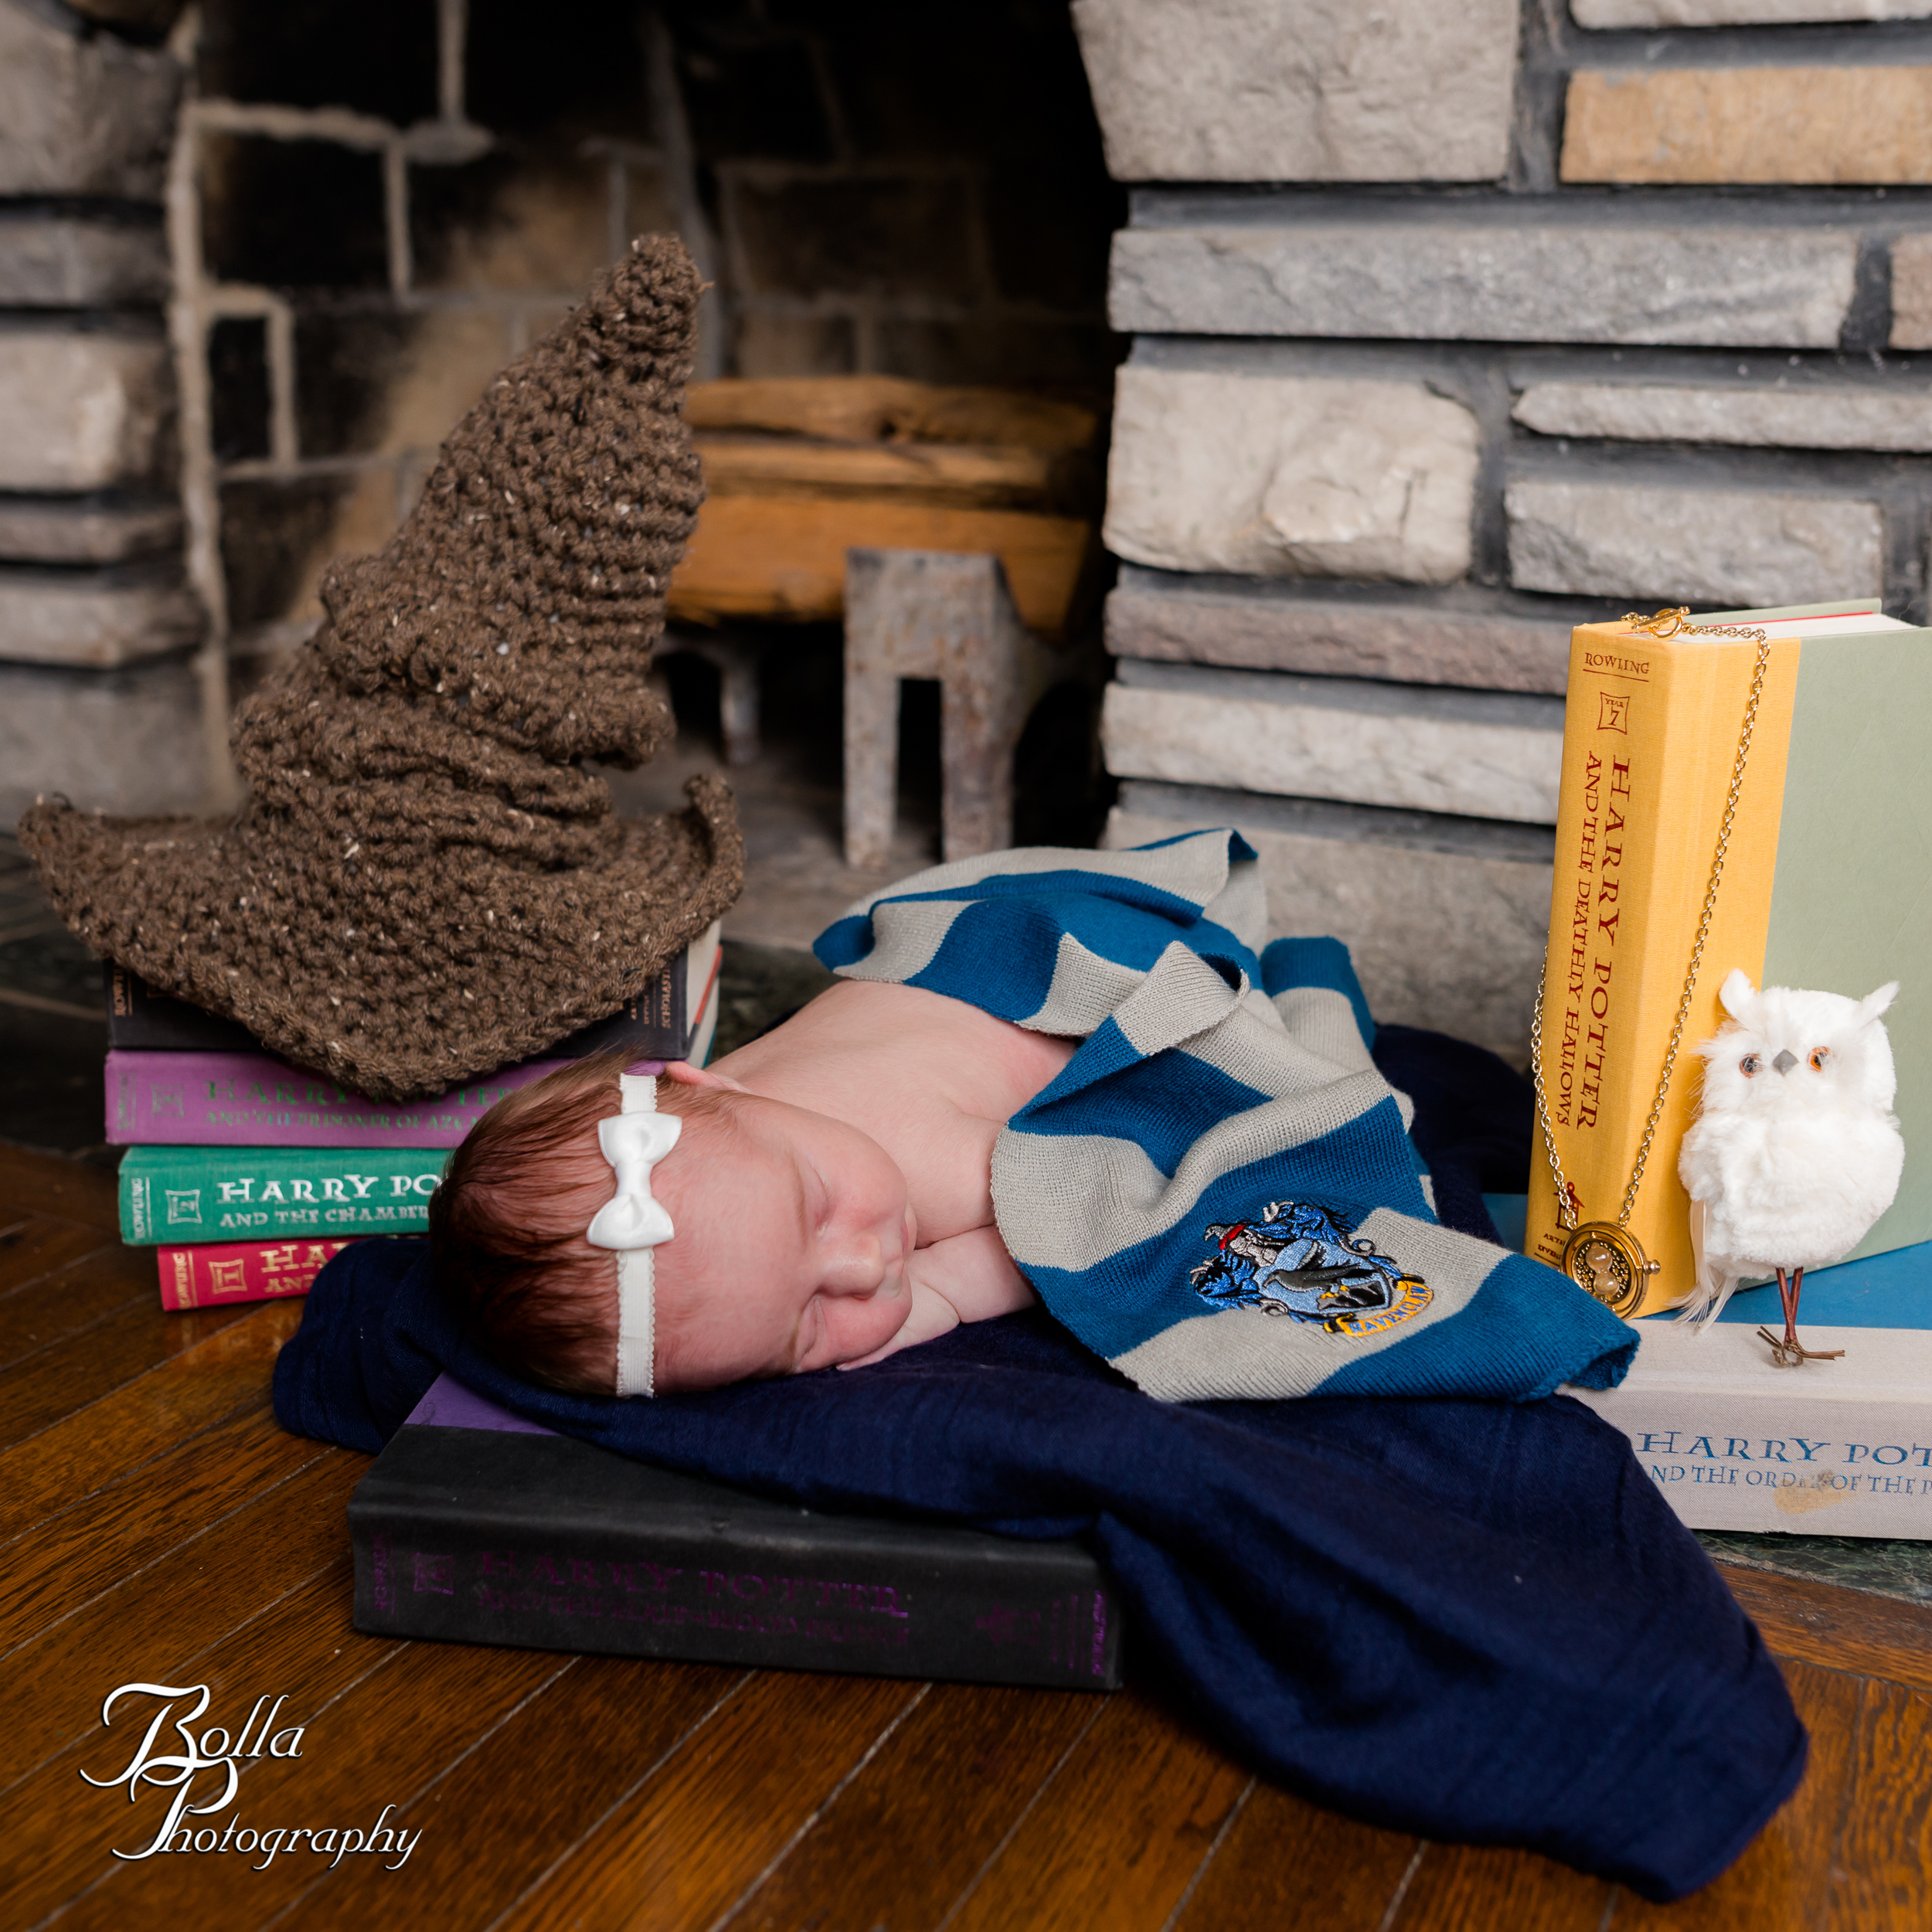 20160903_Bolla photography edwardsville wedding newborn photographer st louis weddings babies-2.jpg